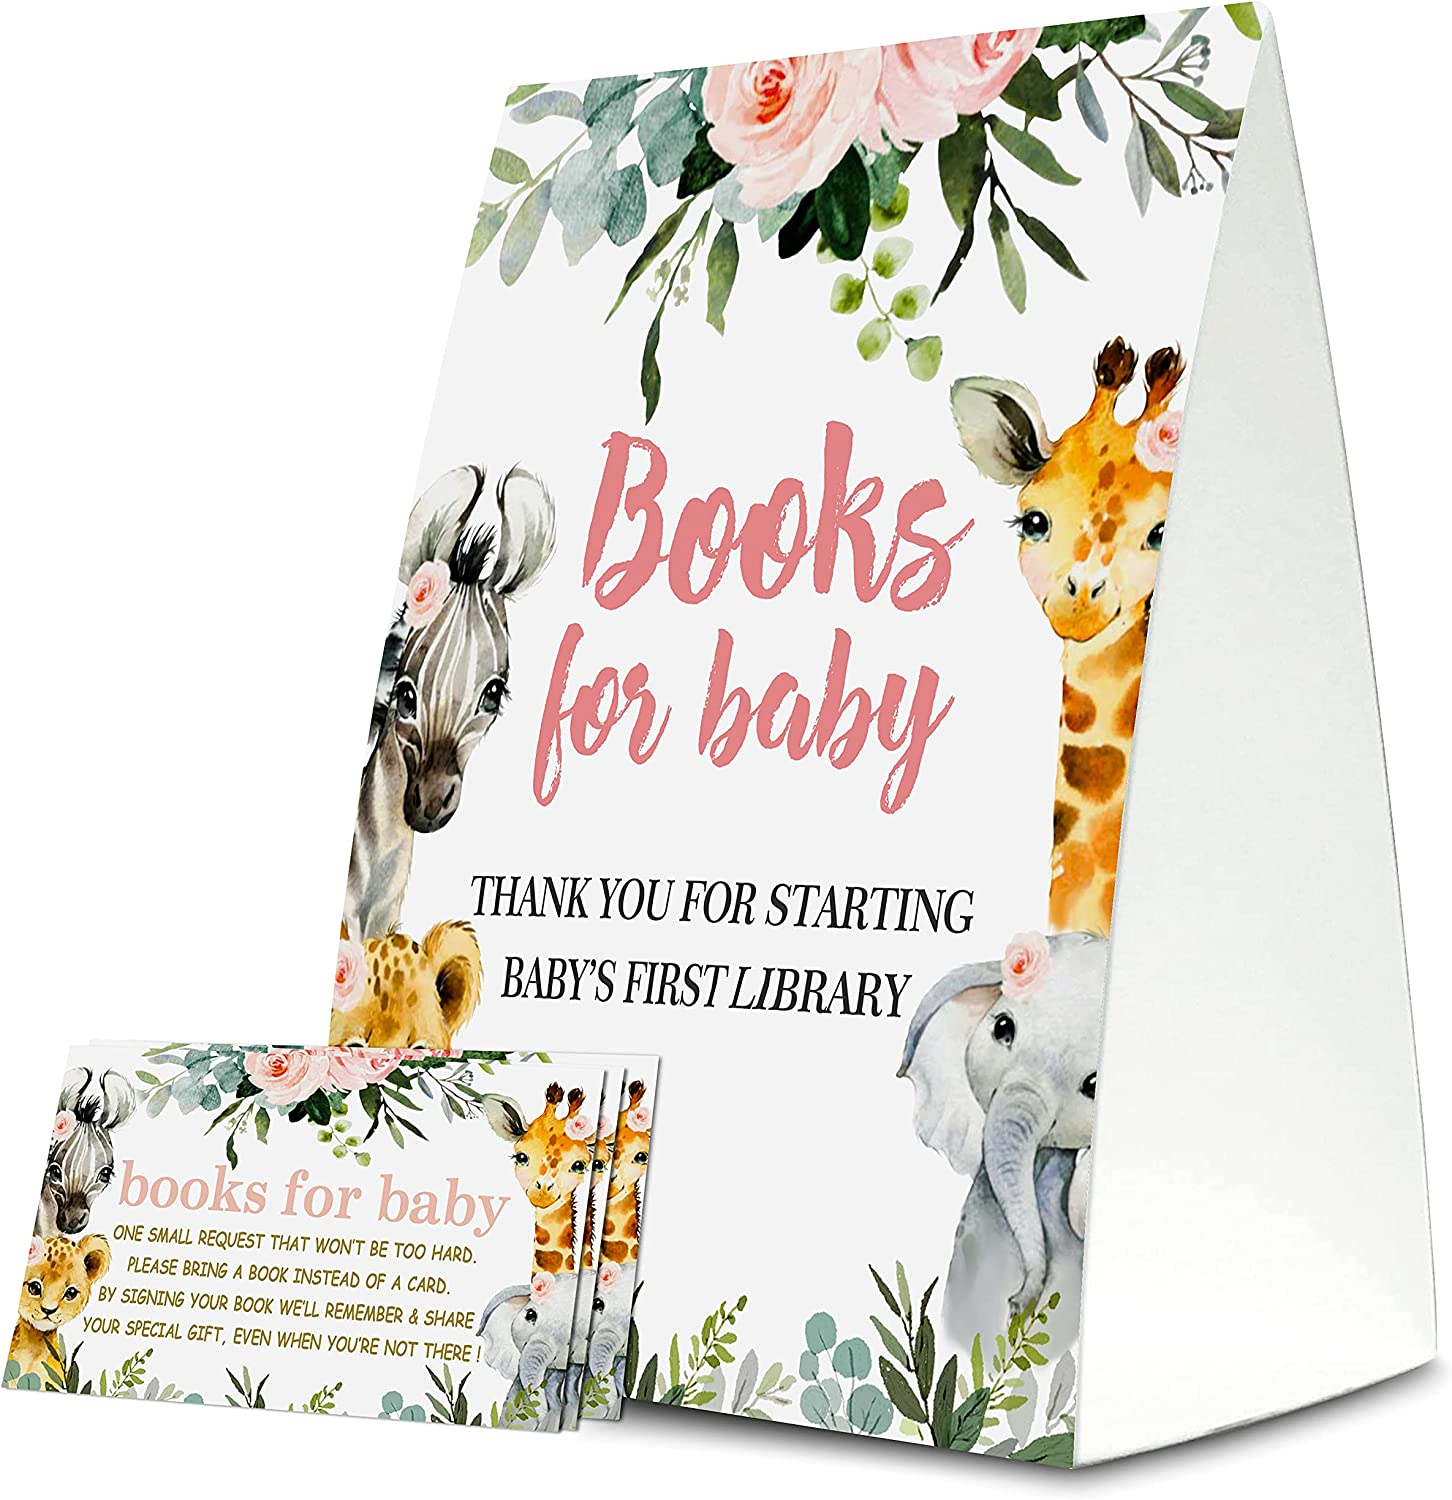 Book Request For Baby Shower, books for baby cards, 1 Sign & 50 Cards Per Pack – (bb002-book)